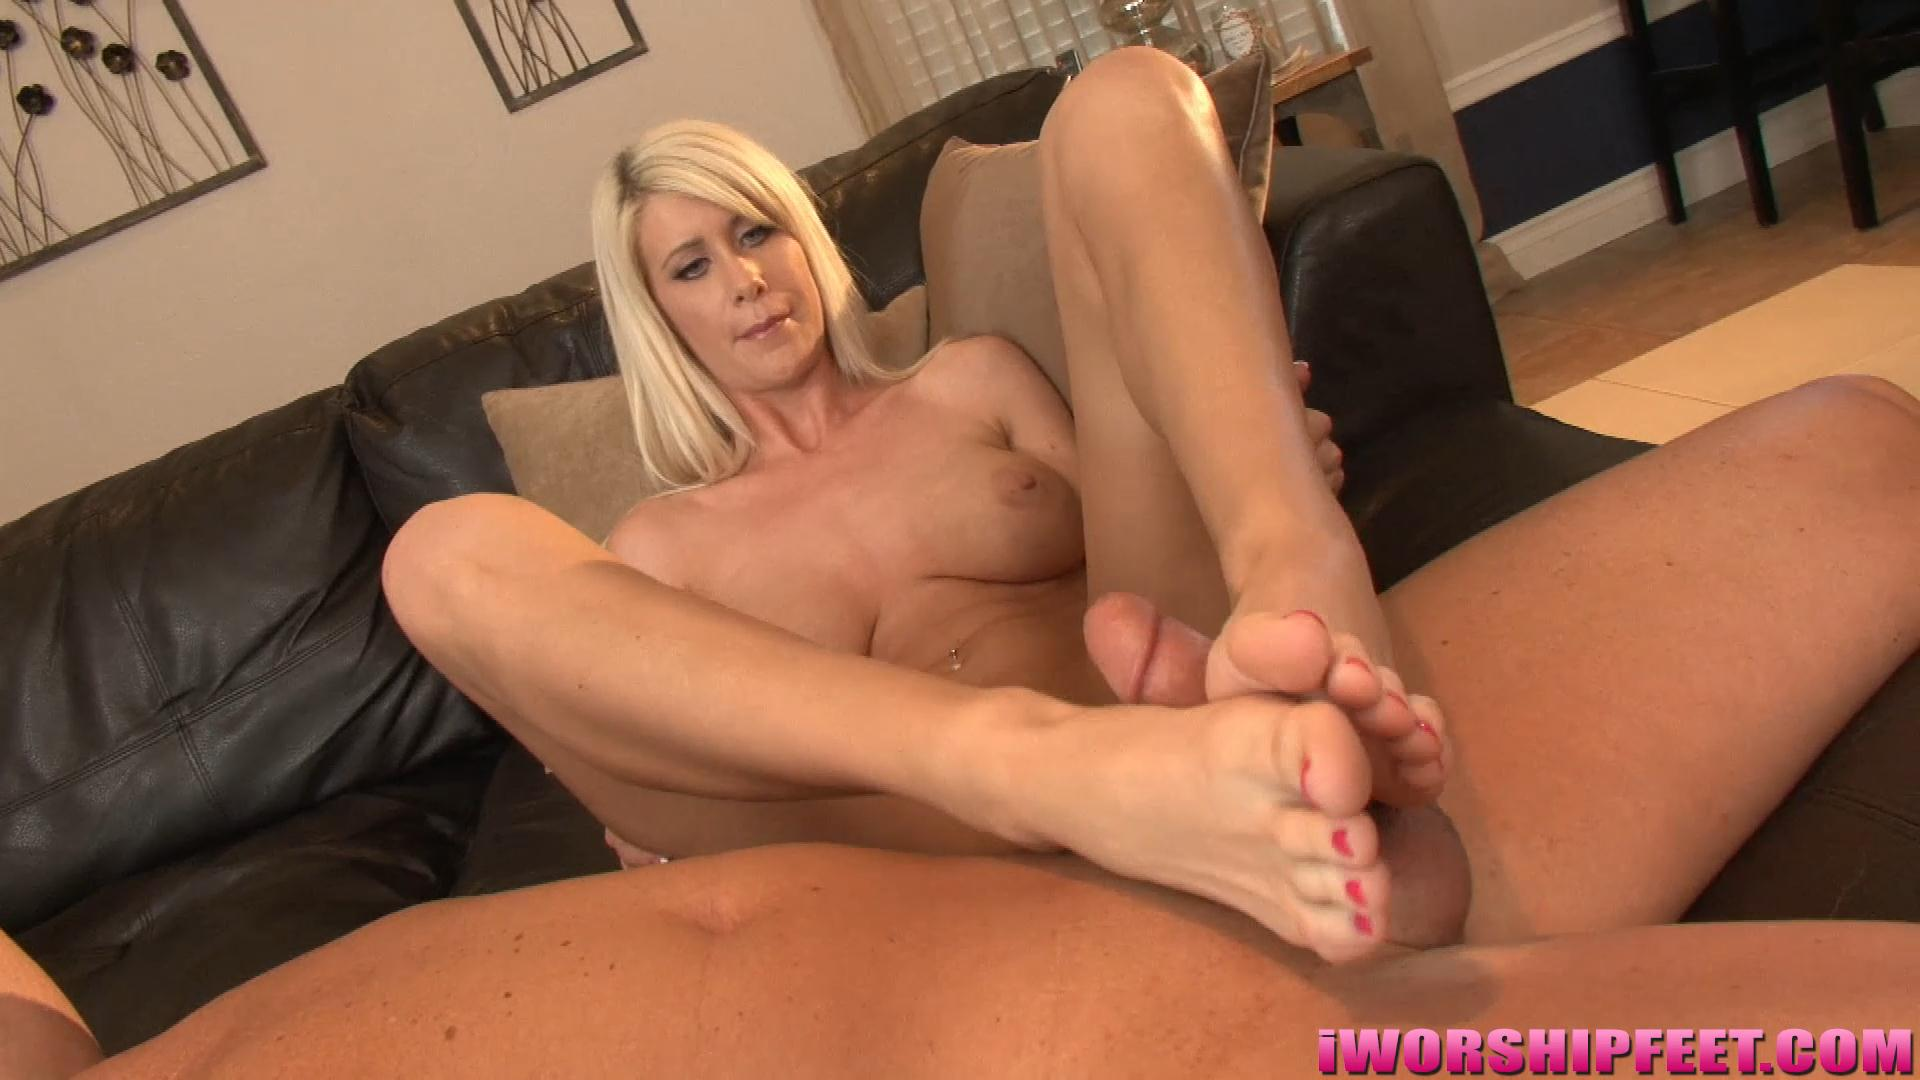 Riley Jenner's FIRST FOOTJOB! Size 10 Feet! – Barely Legal Foot Jobs